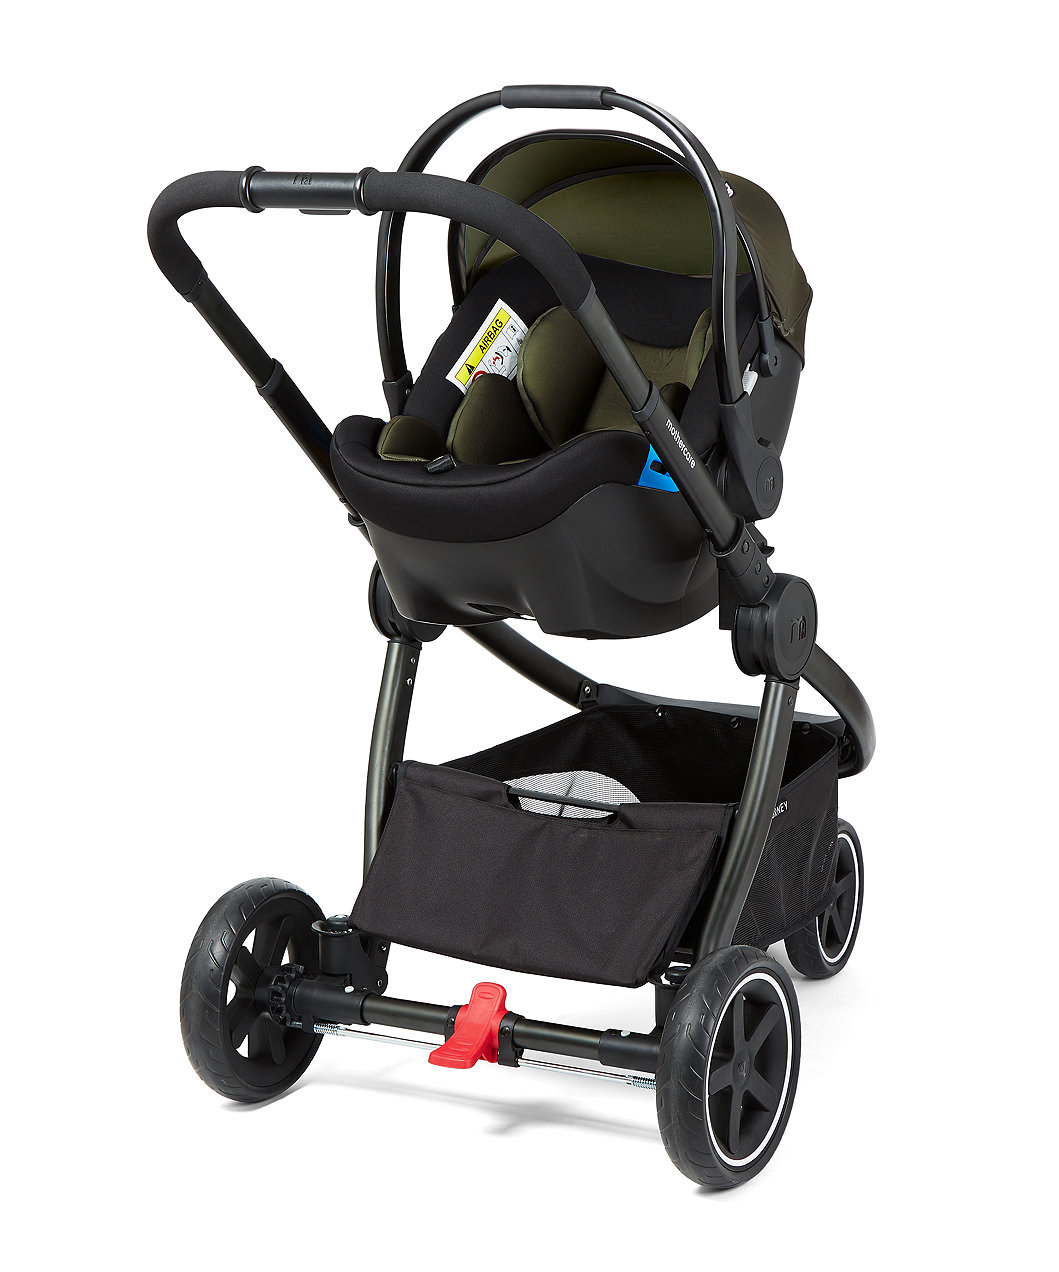 Mothercare 3 in 1 Travel System.